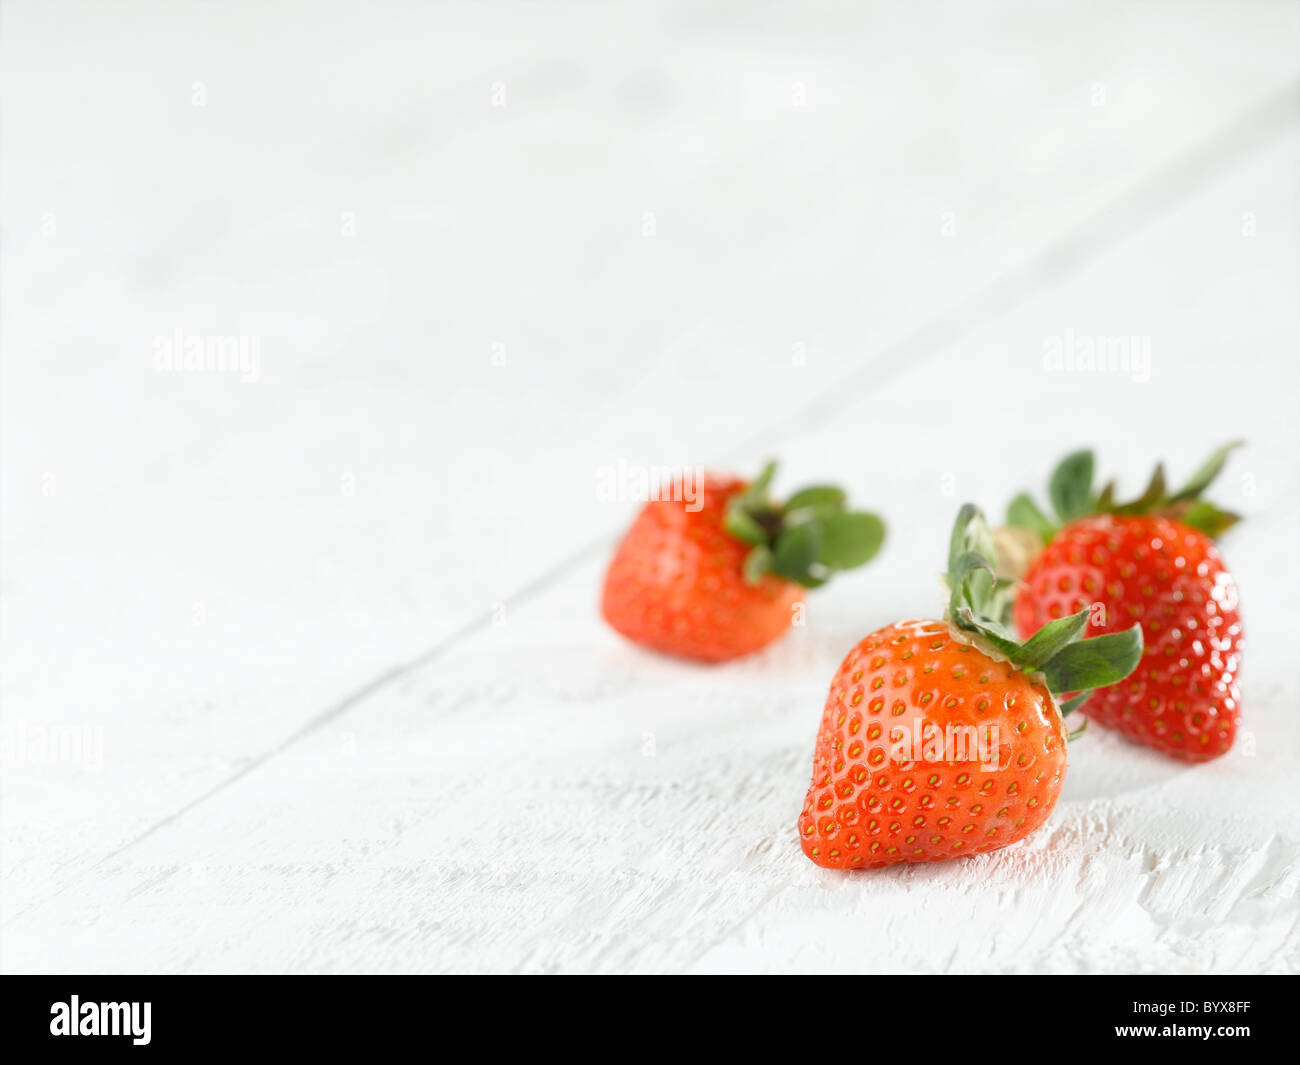 strawberries - Stock Image